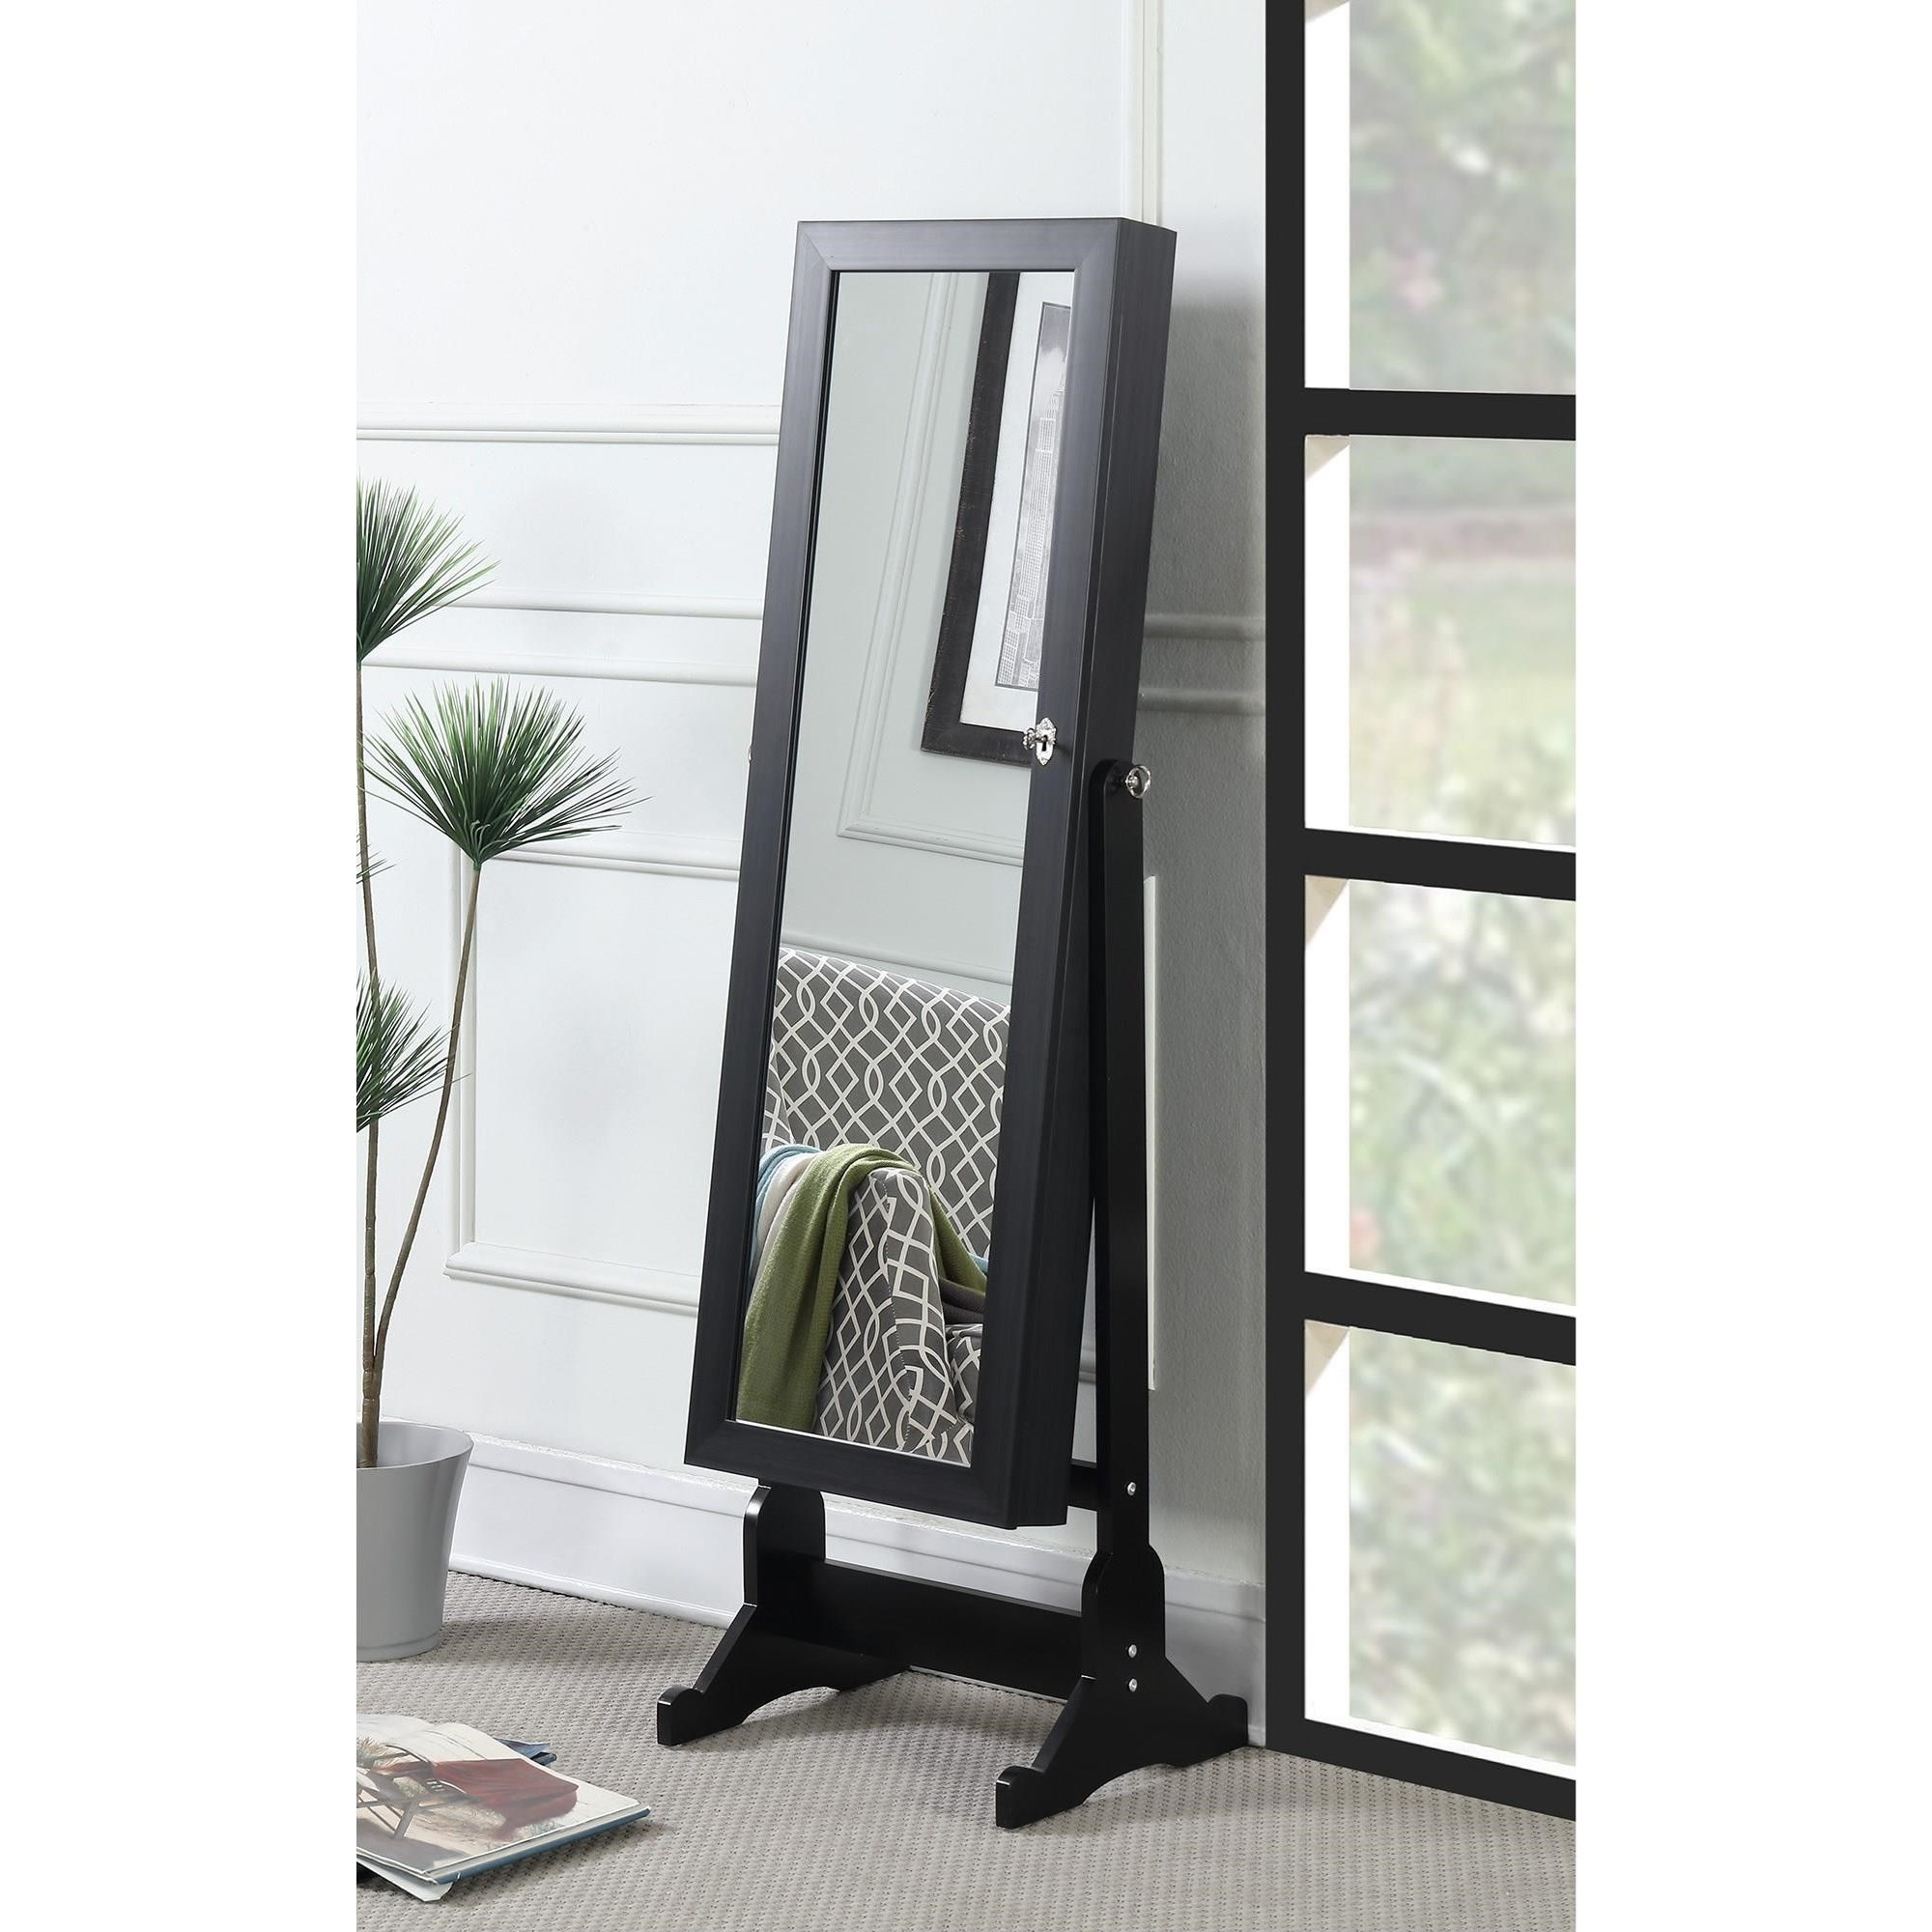 Accent Mirrors Jewelry Cheval Mirror by Coaster at Lapeer Furniture & Mattress Center